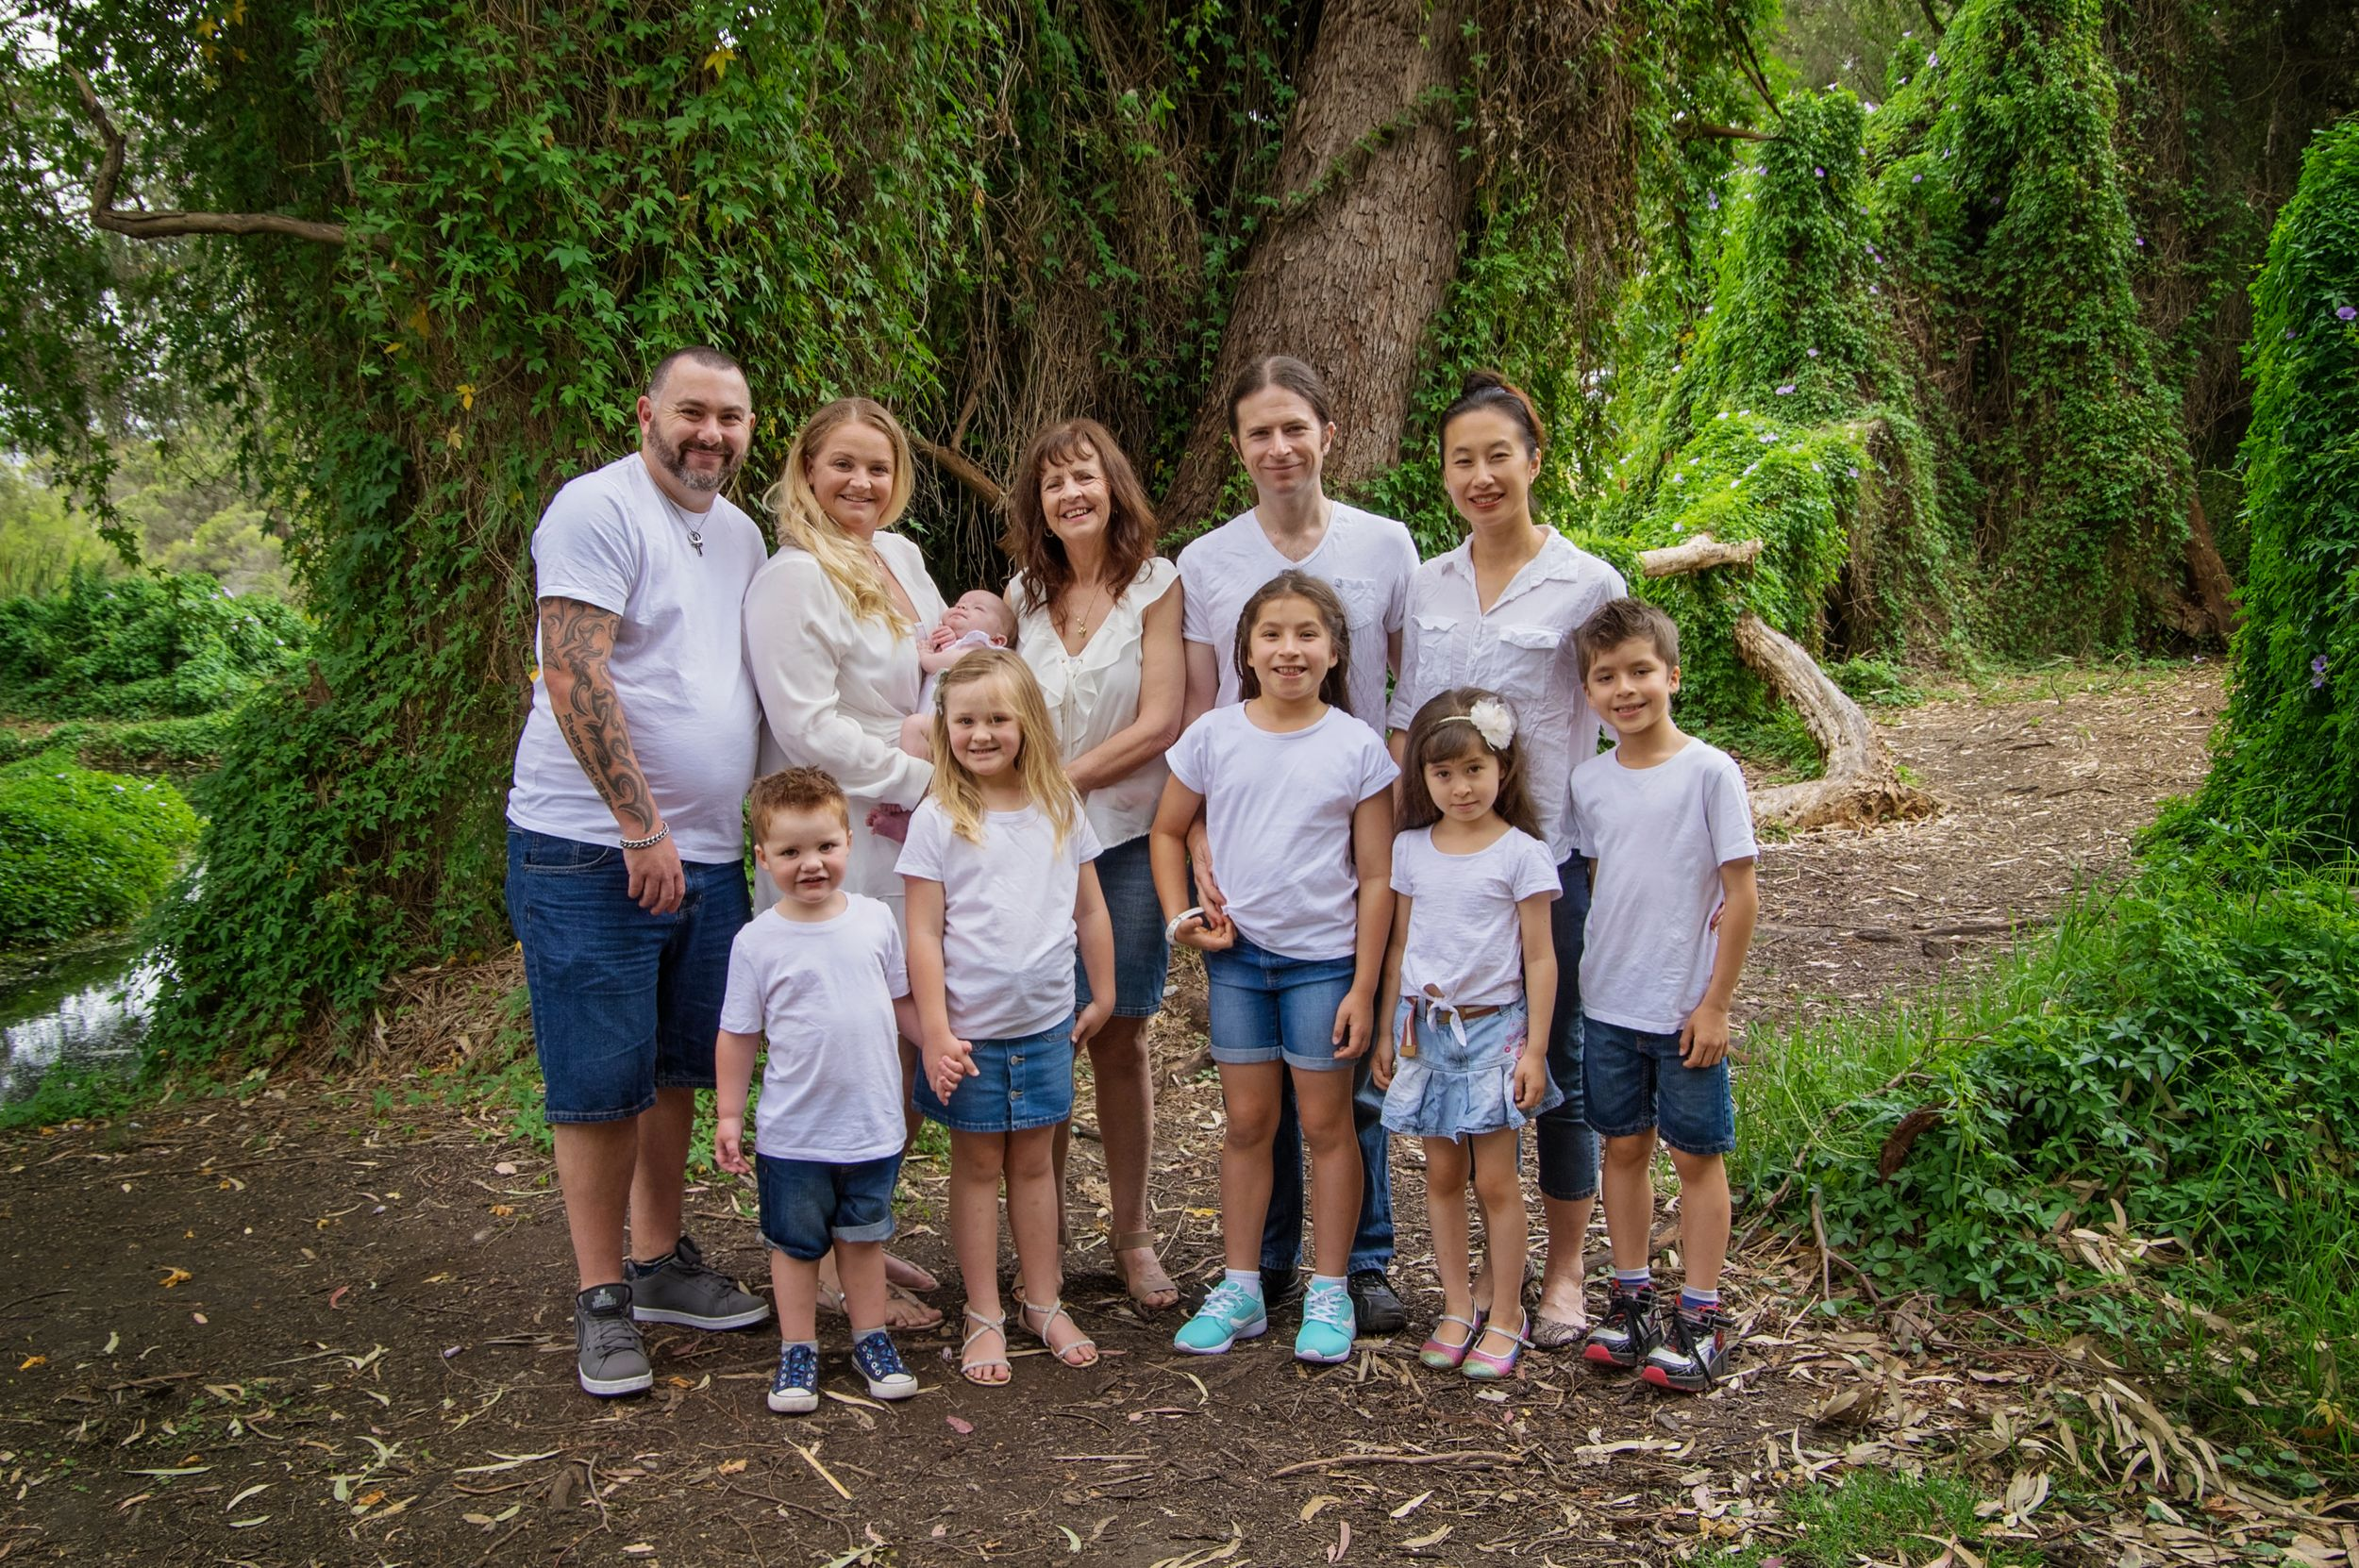 Family portrait outside witih adults and children dressed in white and blue smiling at camera